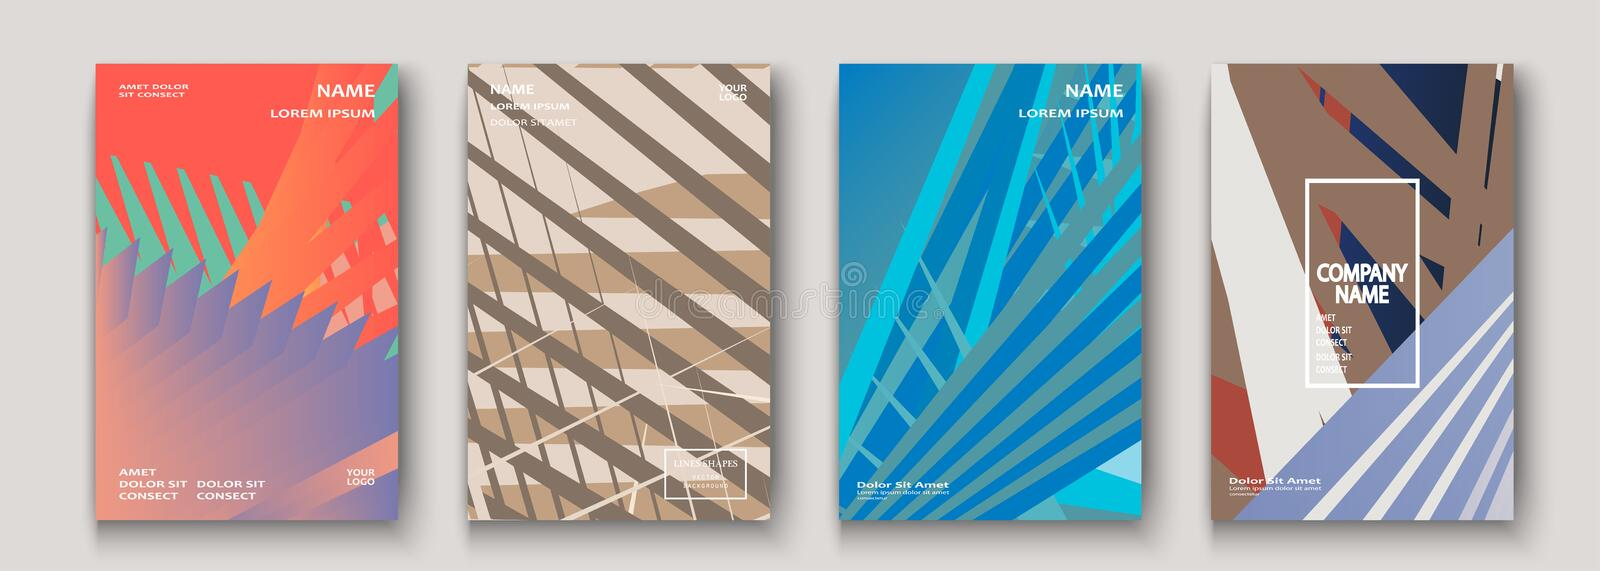 Minimal modern cover collection design. Colorful gradients flat colors in retro 90s style. Future geometric patterns lines. Trendy royalty free illustration